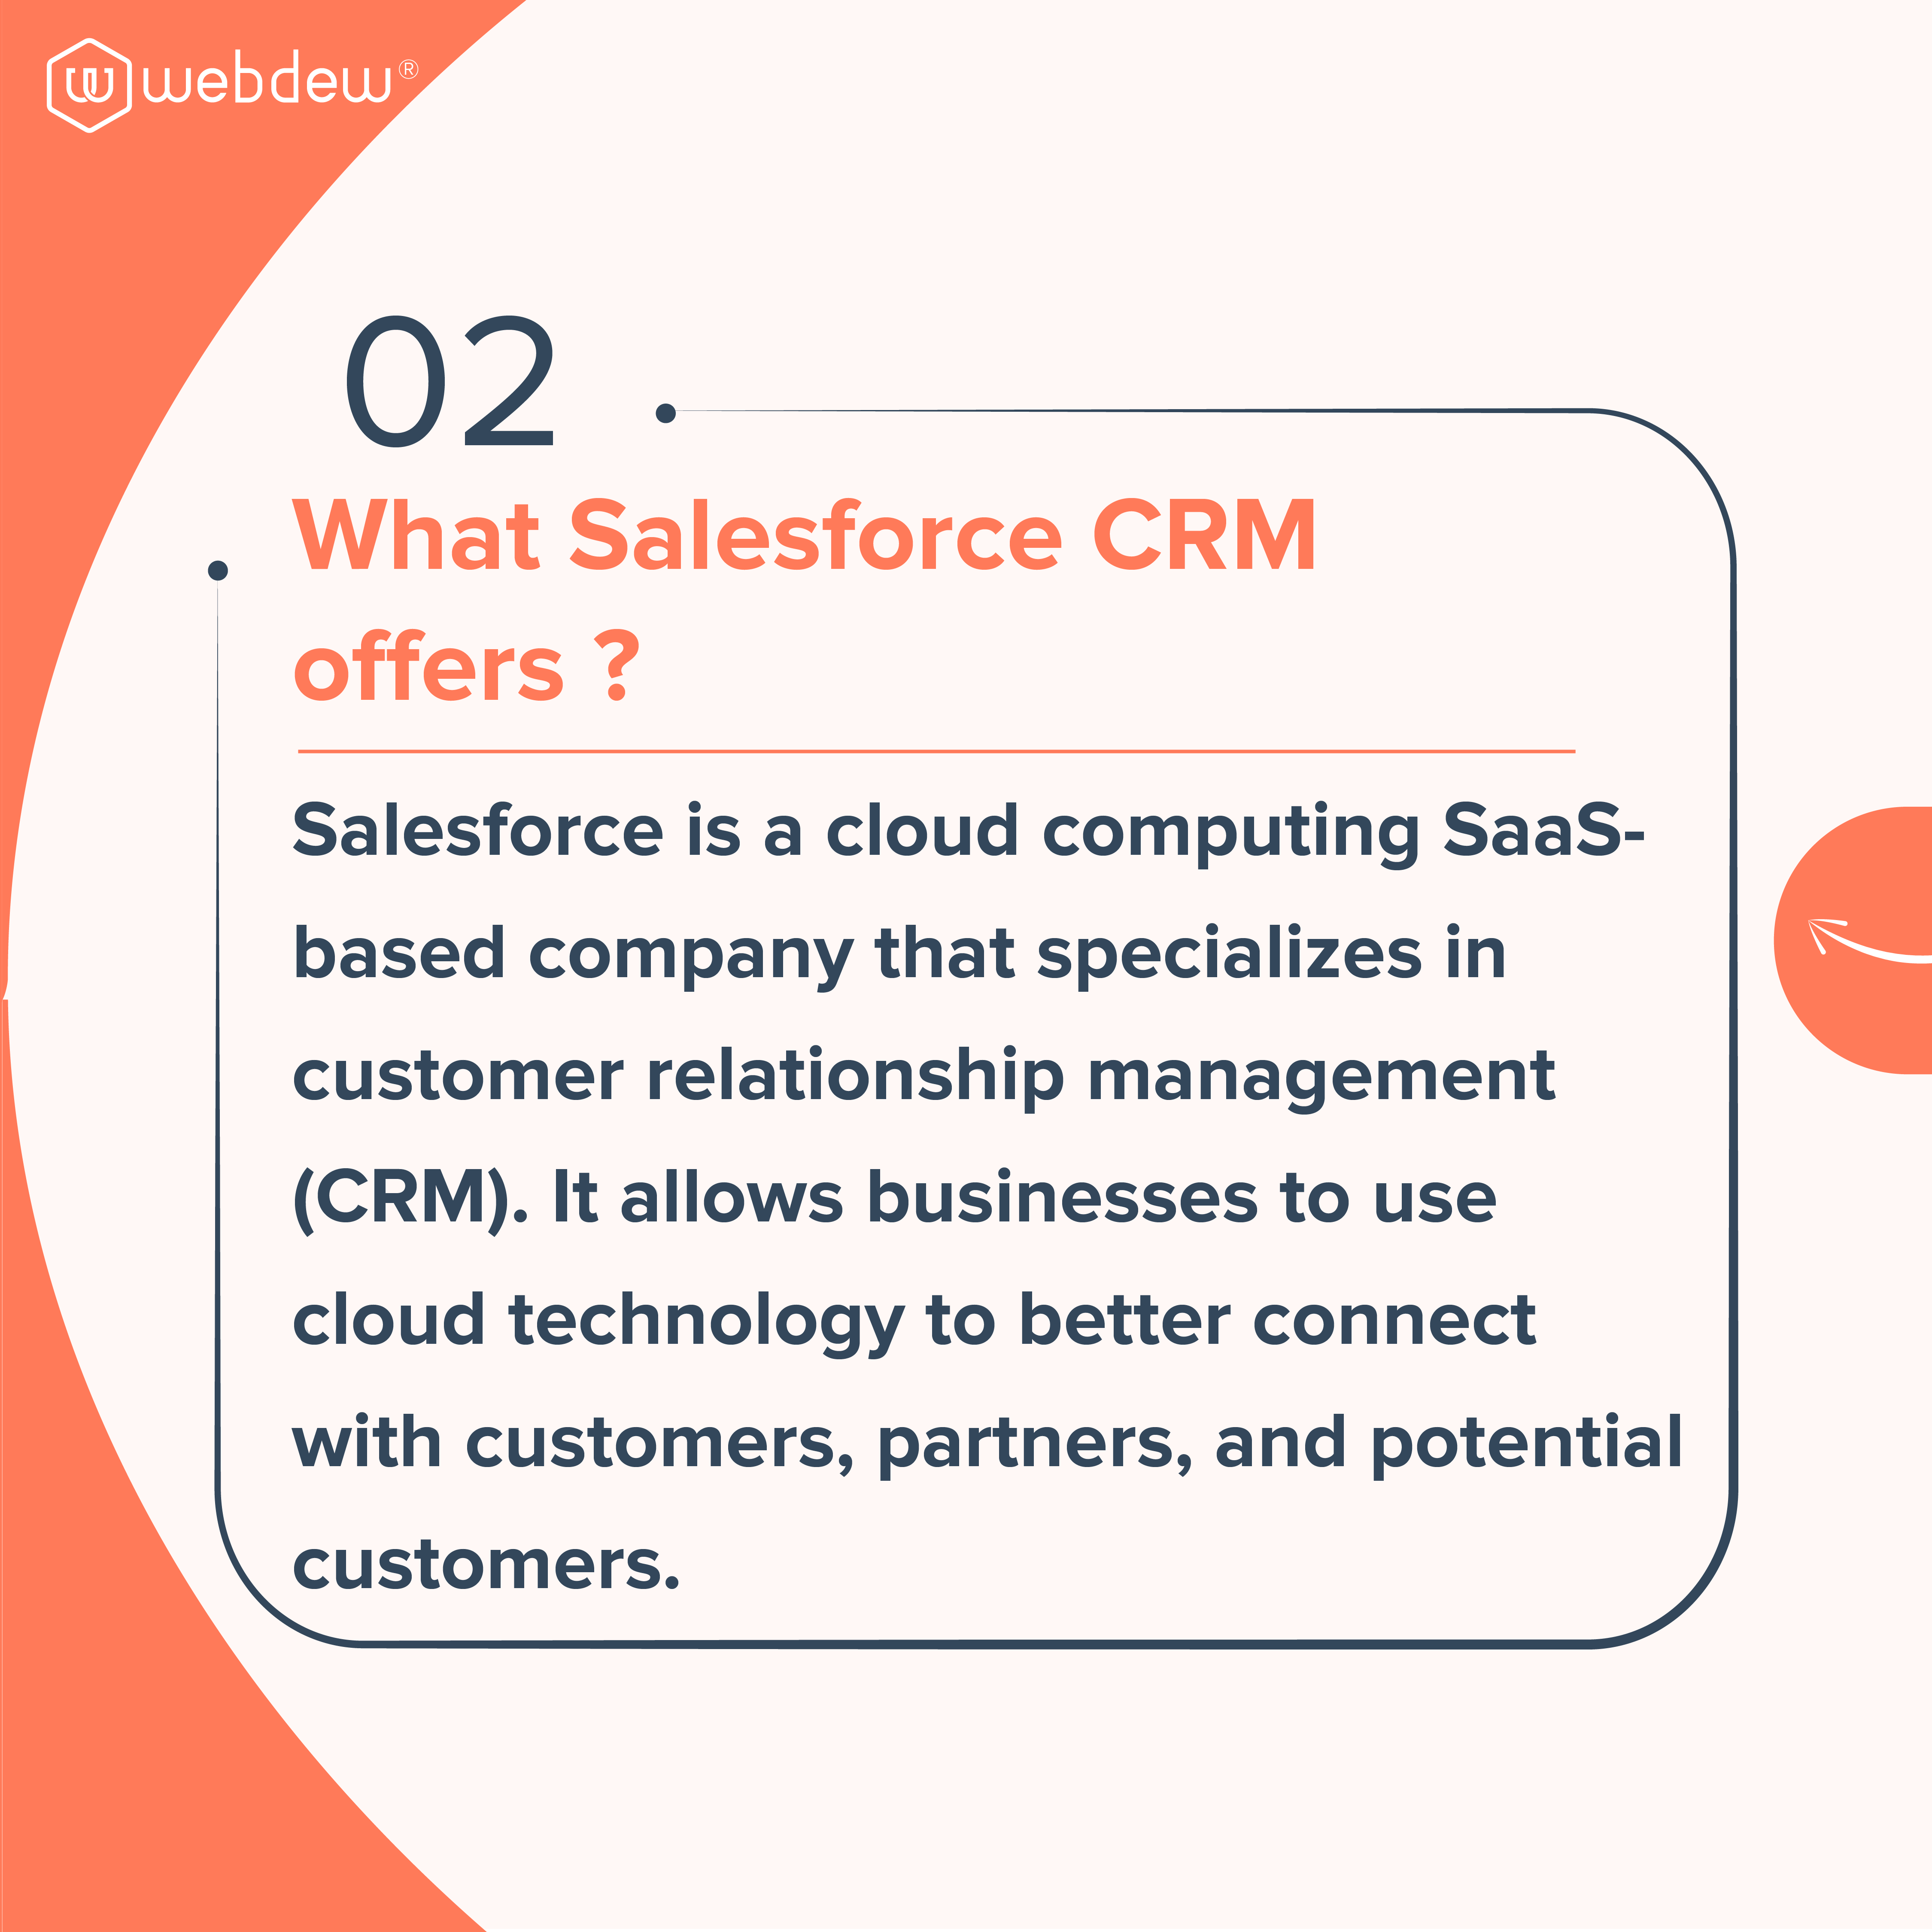 3. what is salesforce CRM